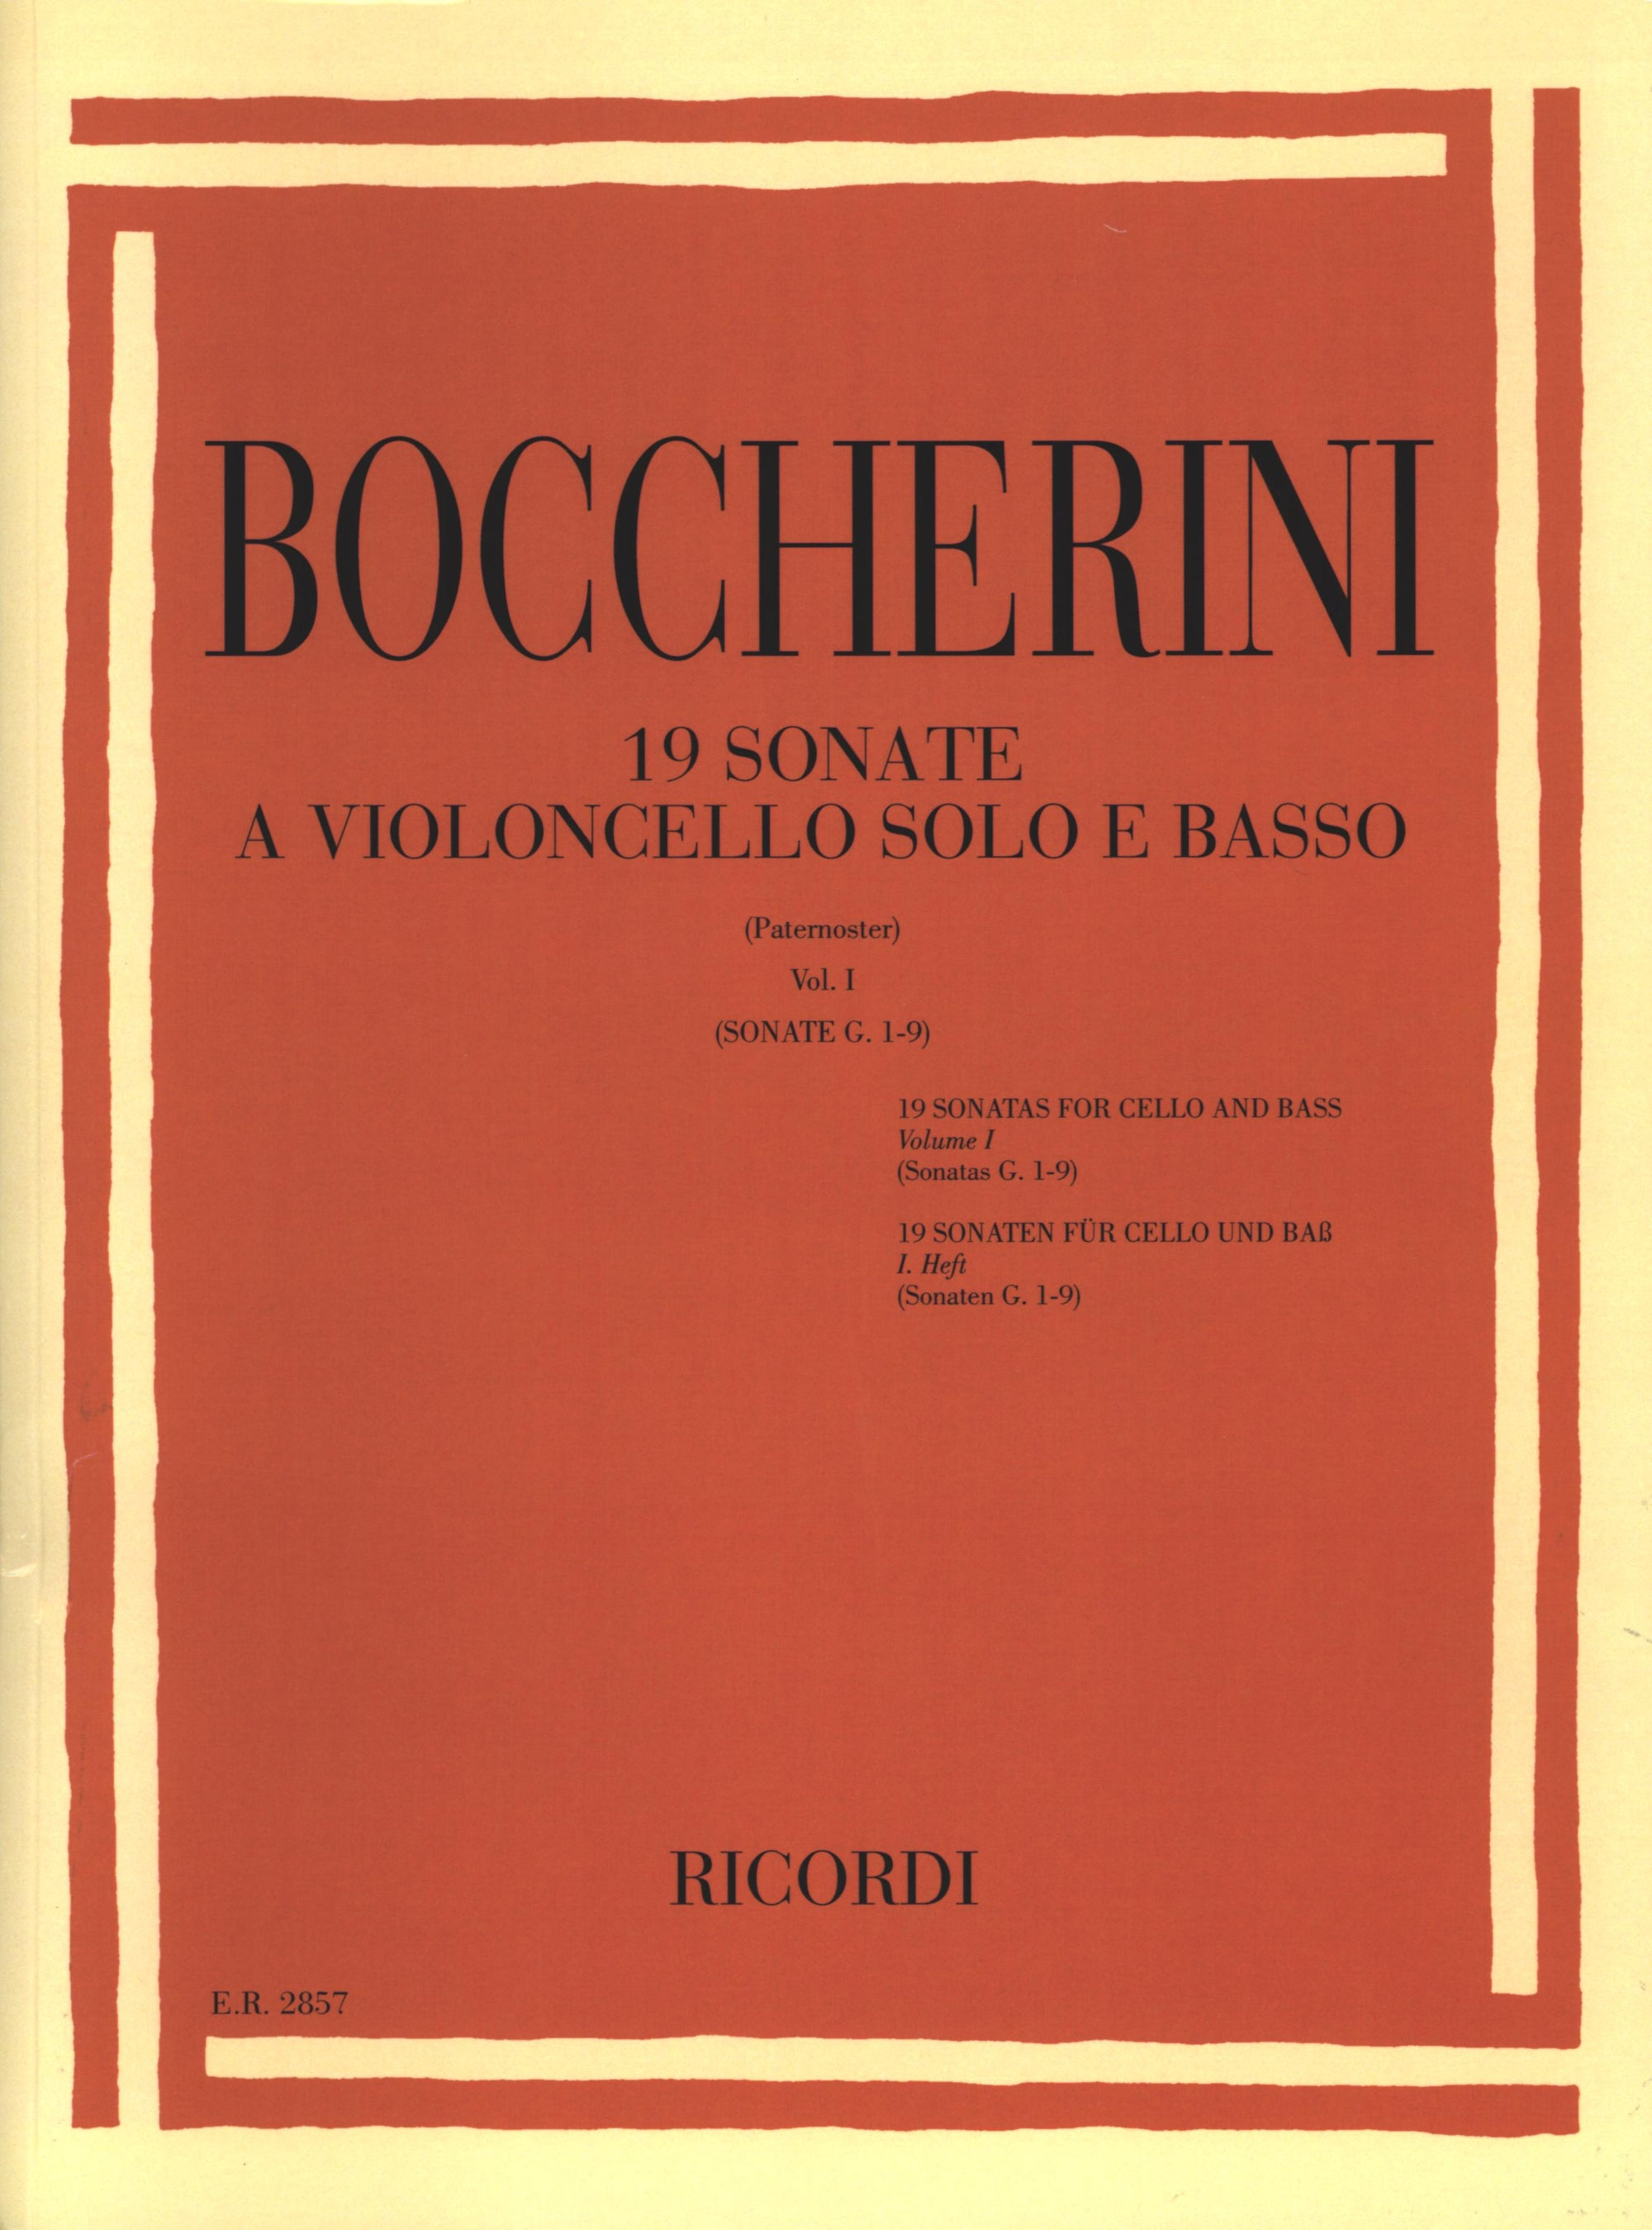 Boccherini: Cello Sonatas - Volume 1 (G. 1-9)